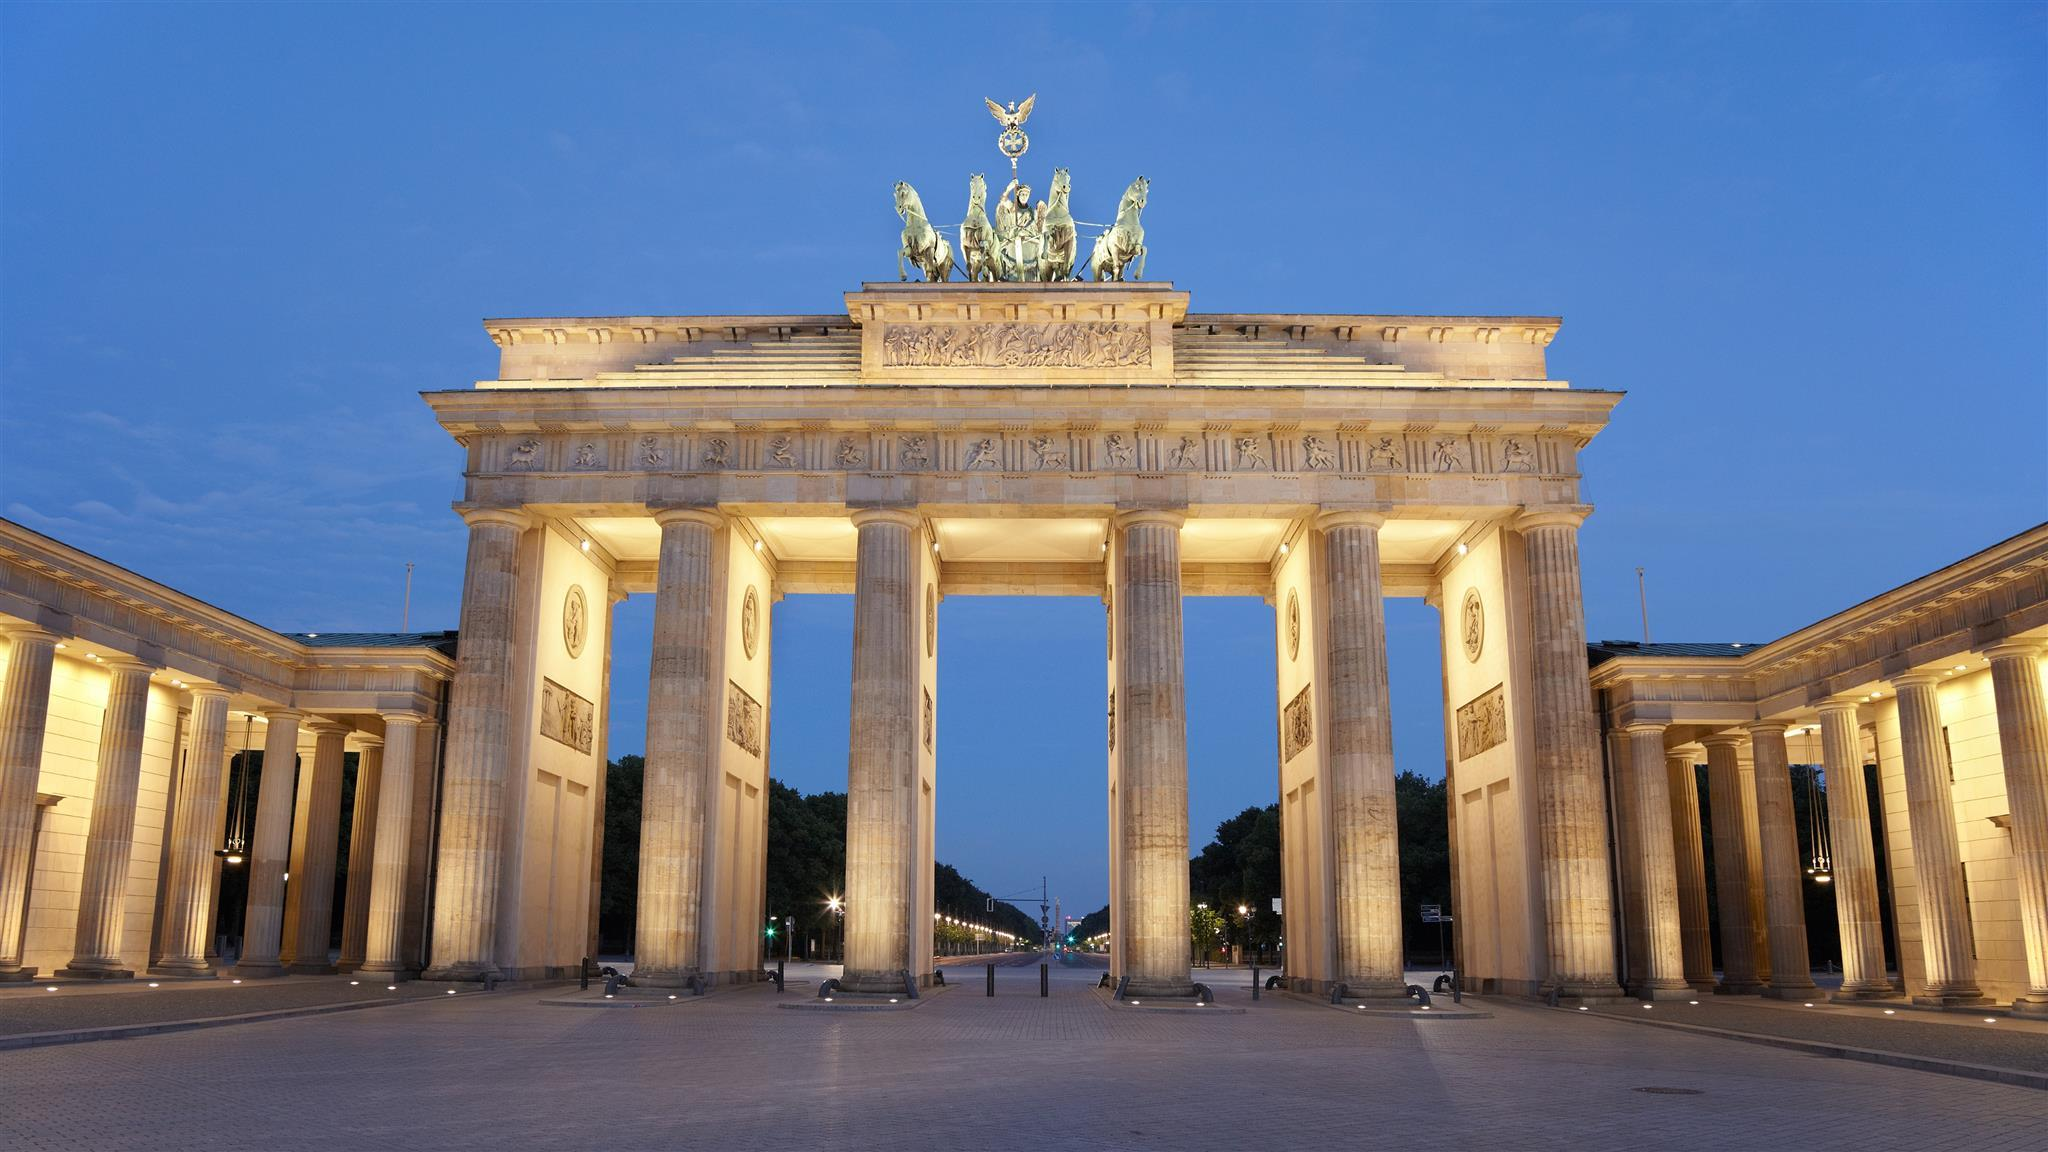 10 Best Berlin Hotels Hd Pictures Reviews Of Hotels In